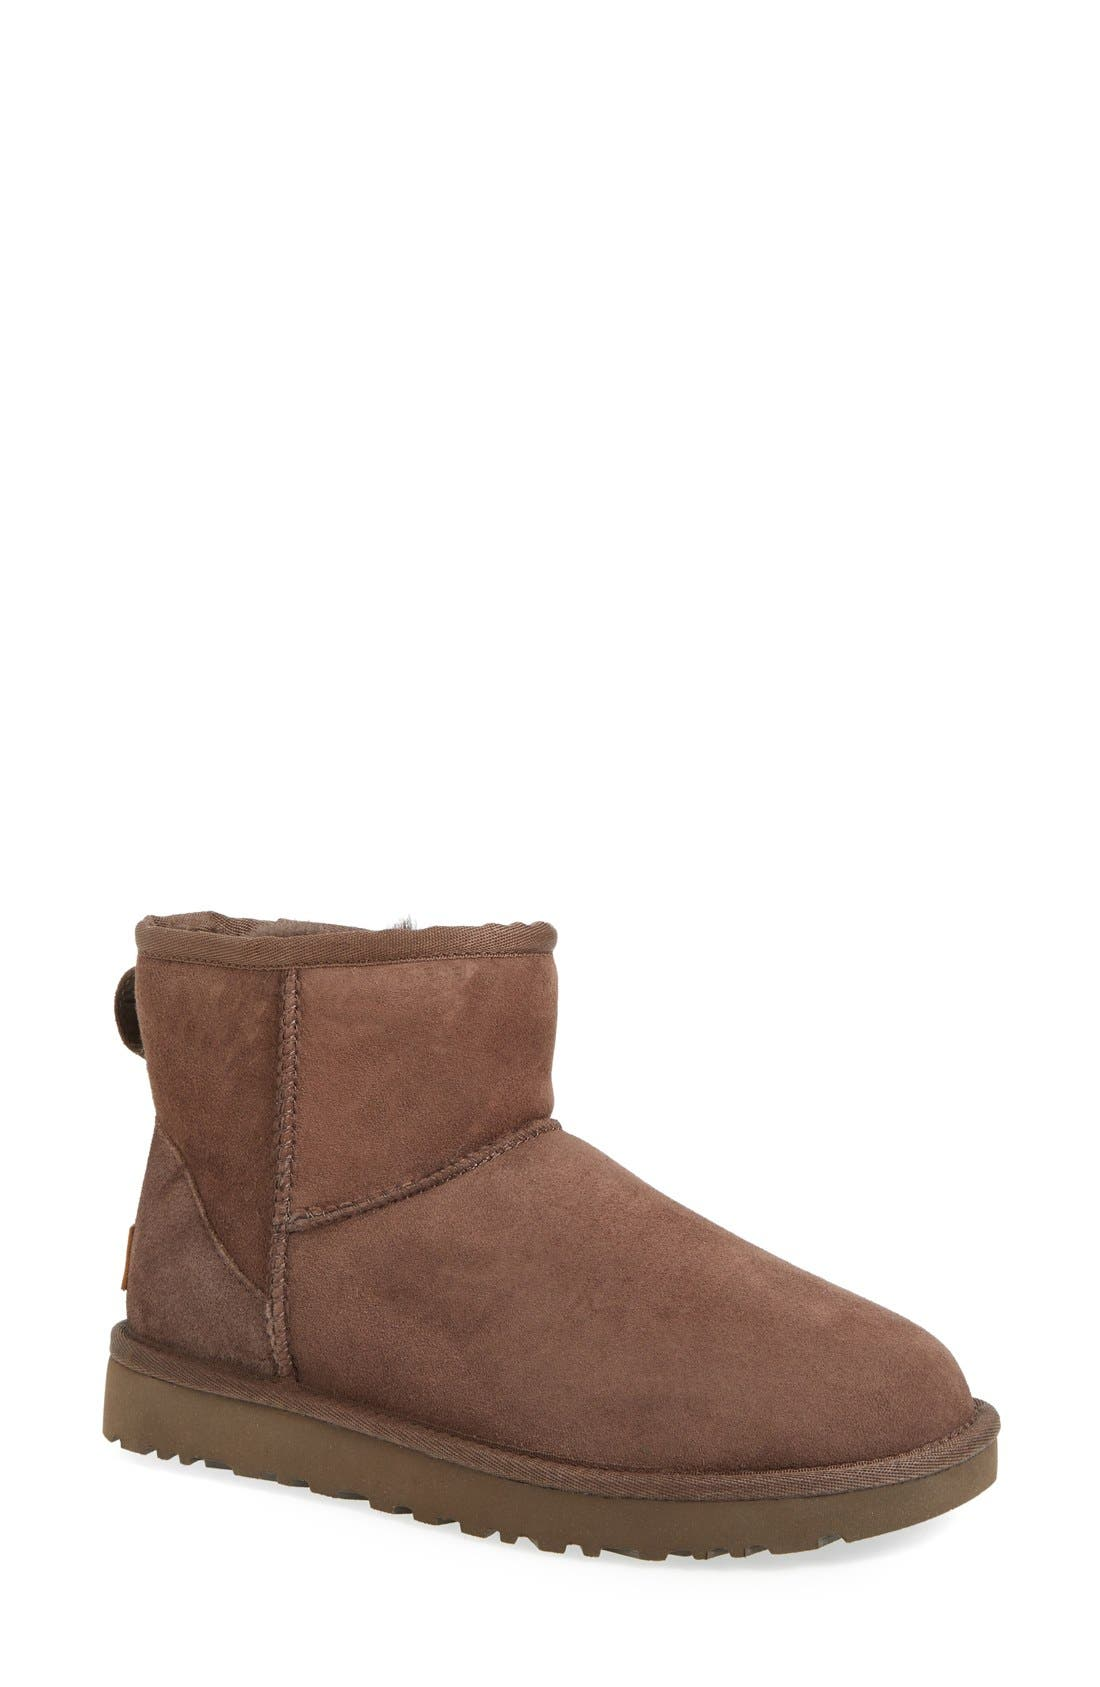 Alternate Image 1 Selected - UGG® 'Classic Mini II' Genuine Shearling Lined Boot (Women)